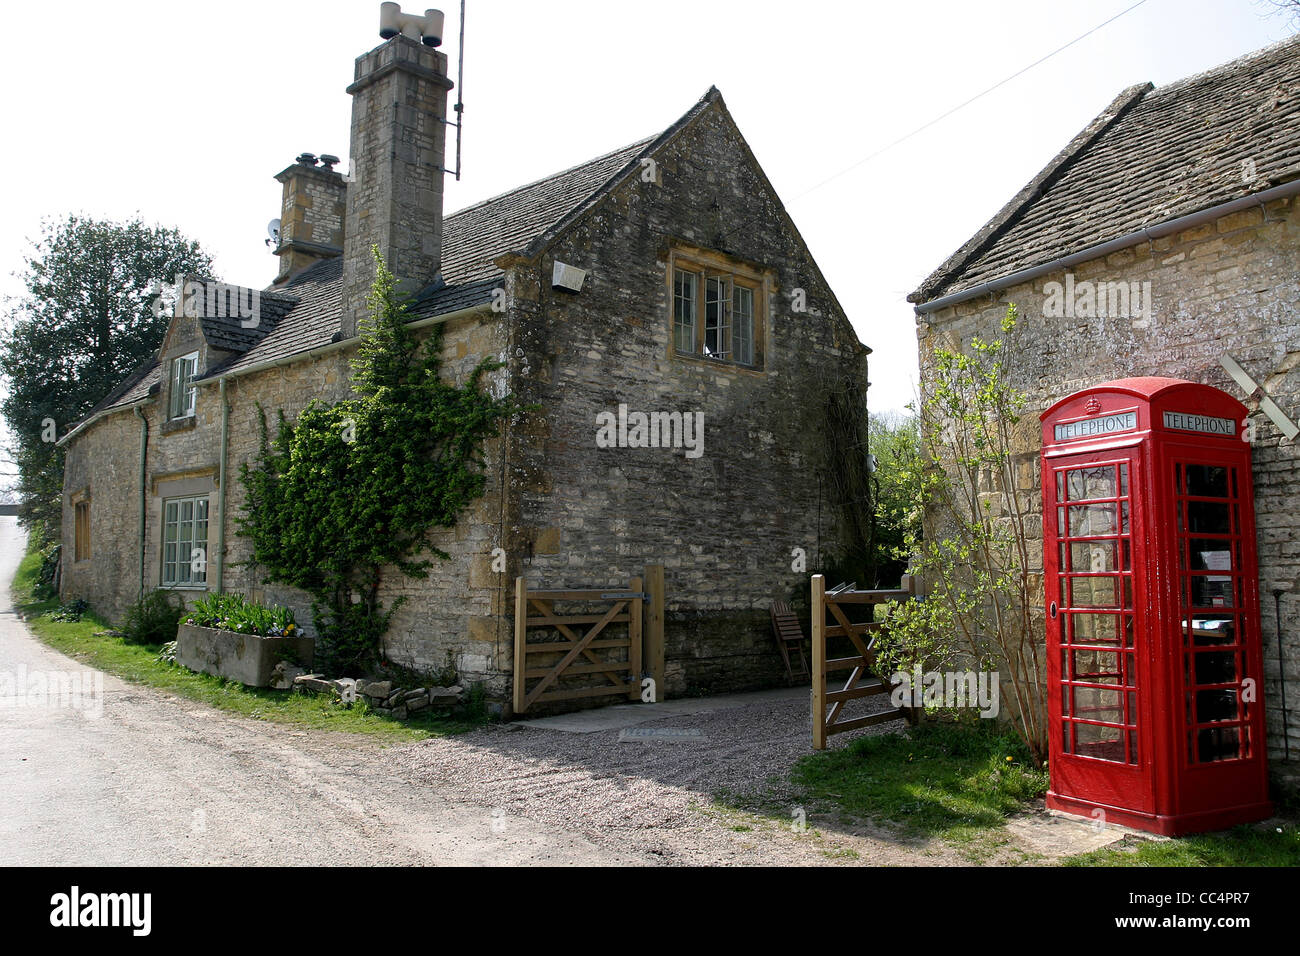 Country Lane With A Red Phone Box - Stock Image